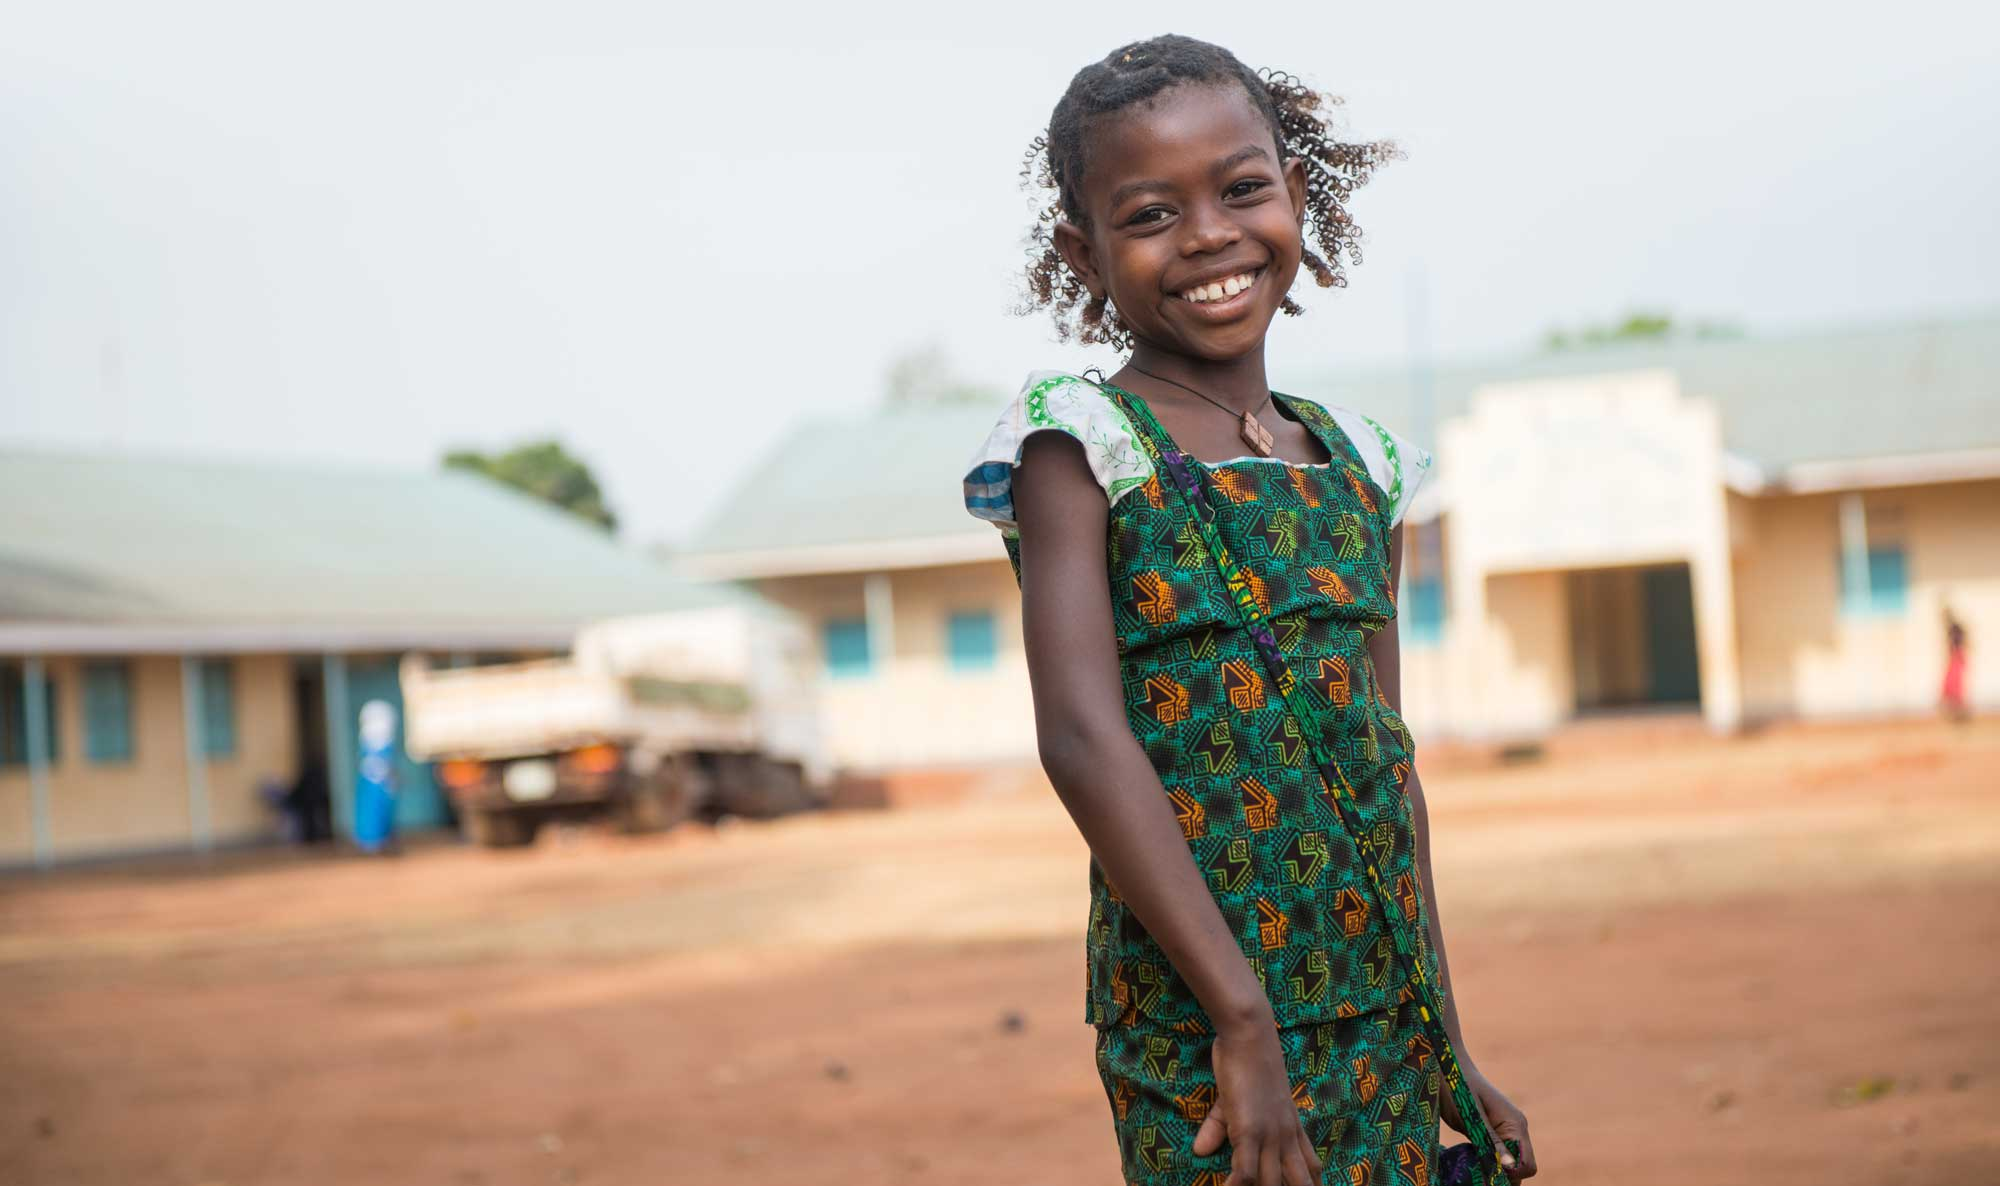 Smiling girl stands in the middle of her South Sudanese village